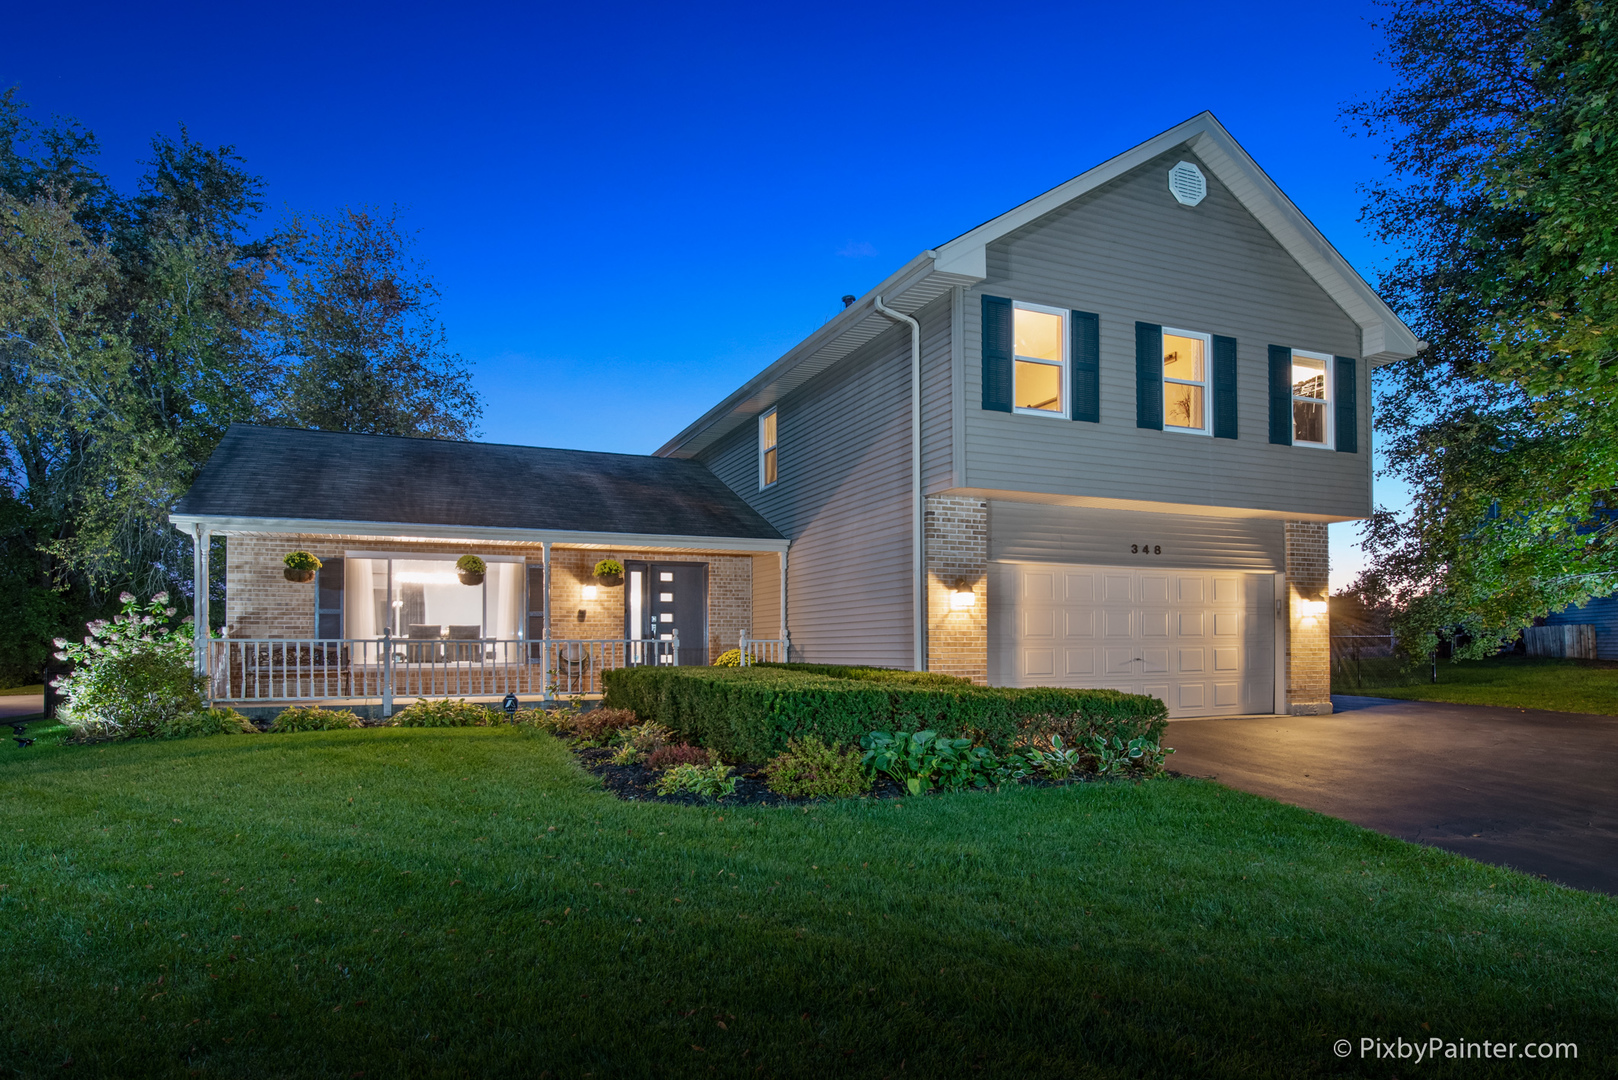 Photo for 348 Bayberry Drive, Algonquin, IL 60102 (MLS # 10527587)